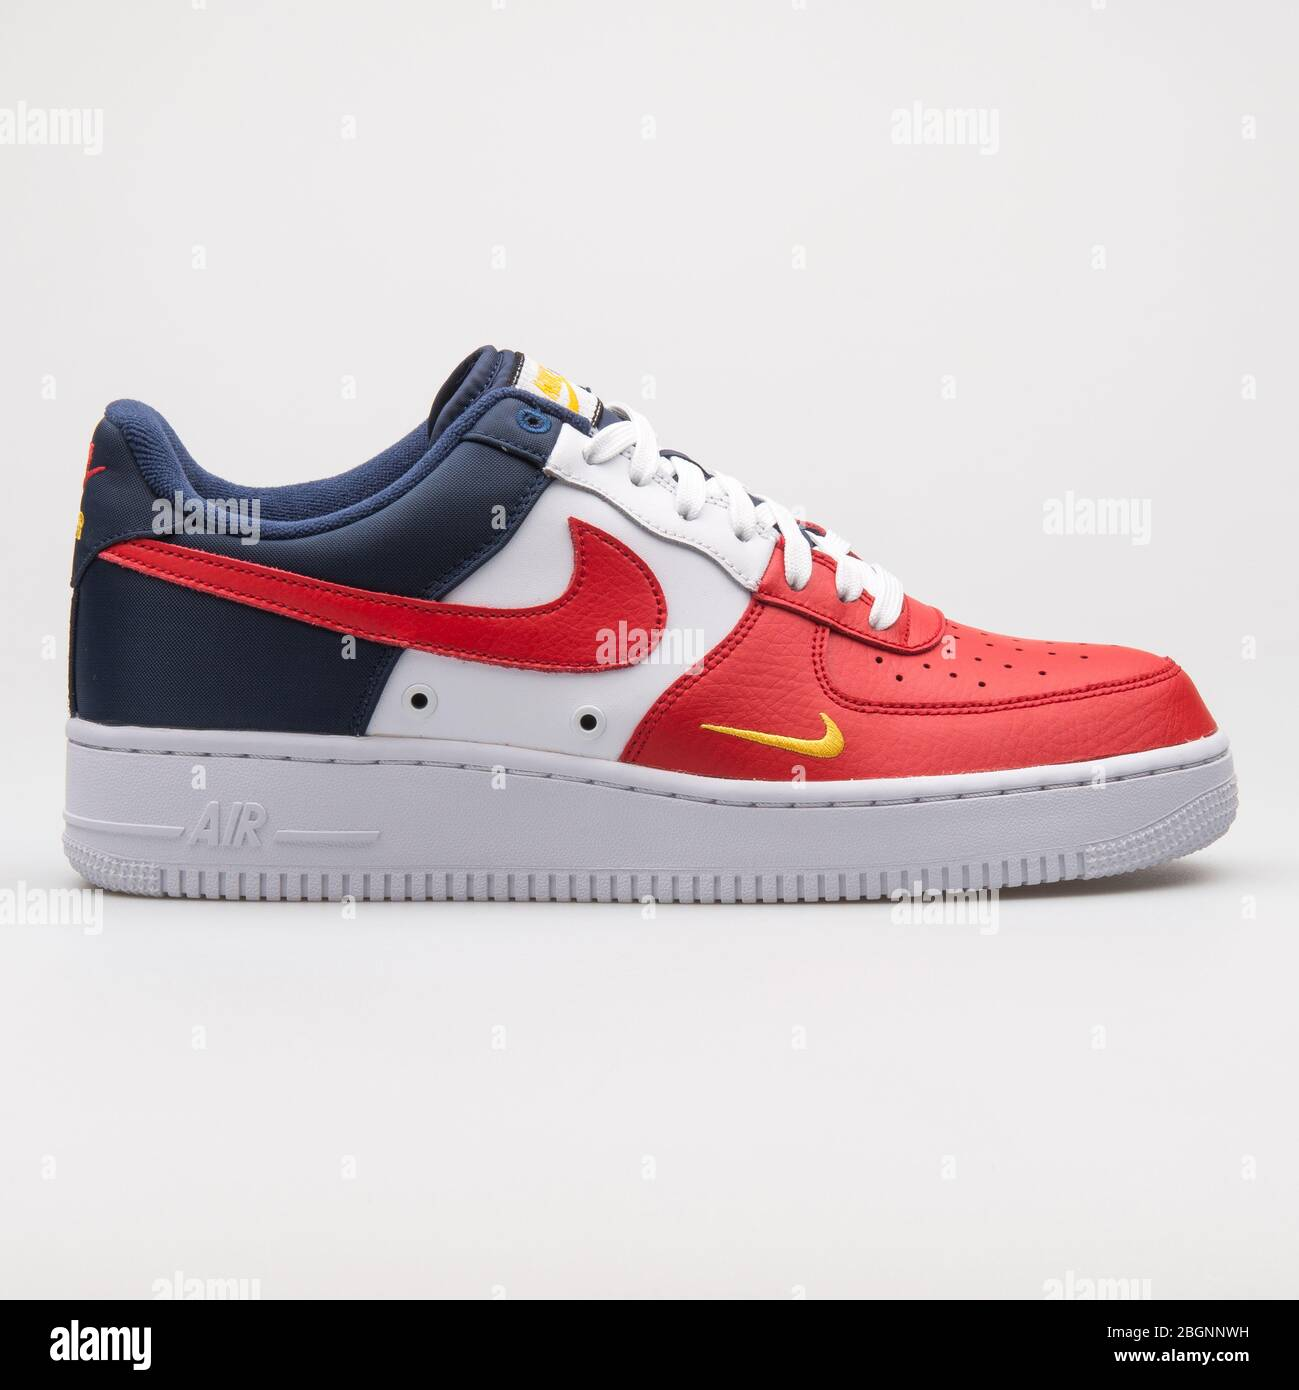 nike air force 1 rosse e oro